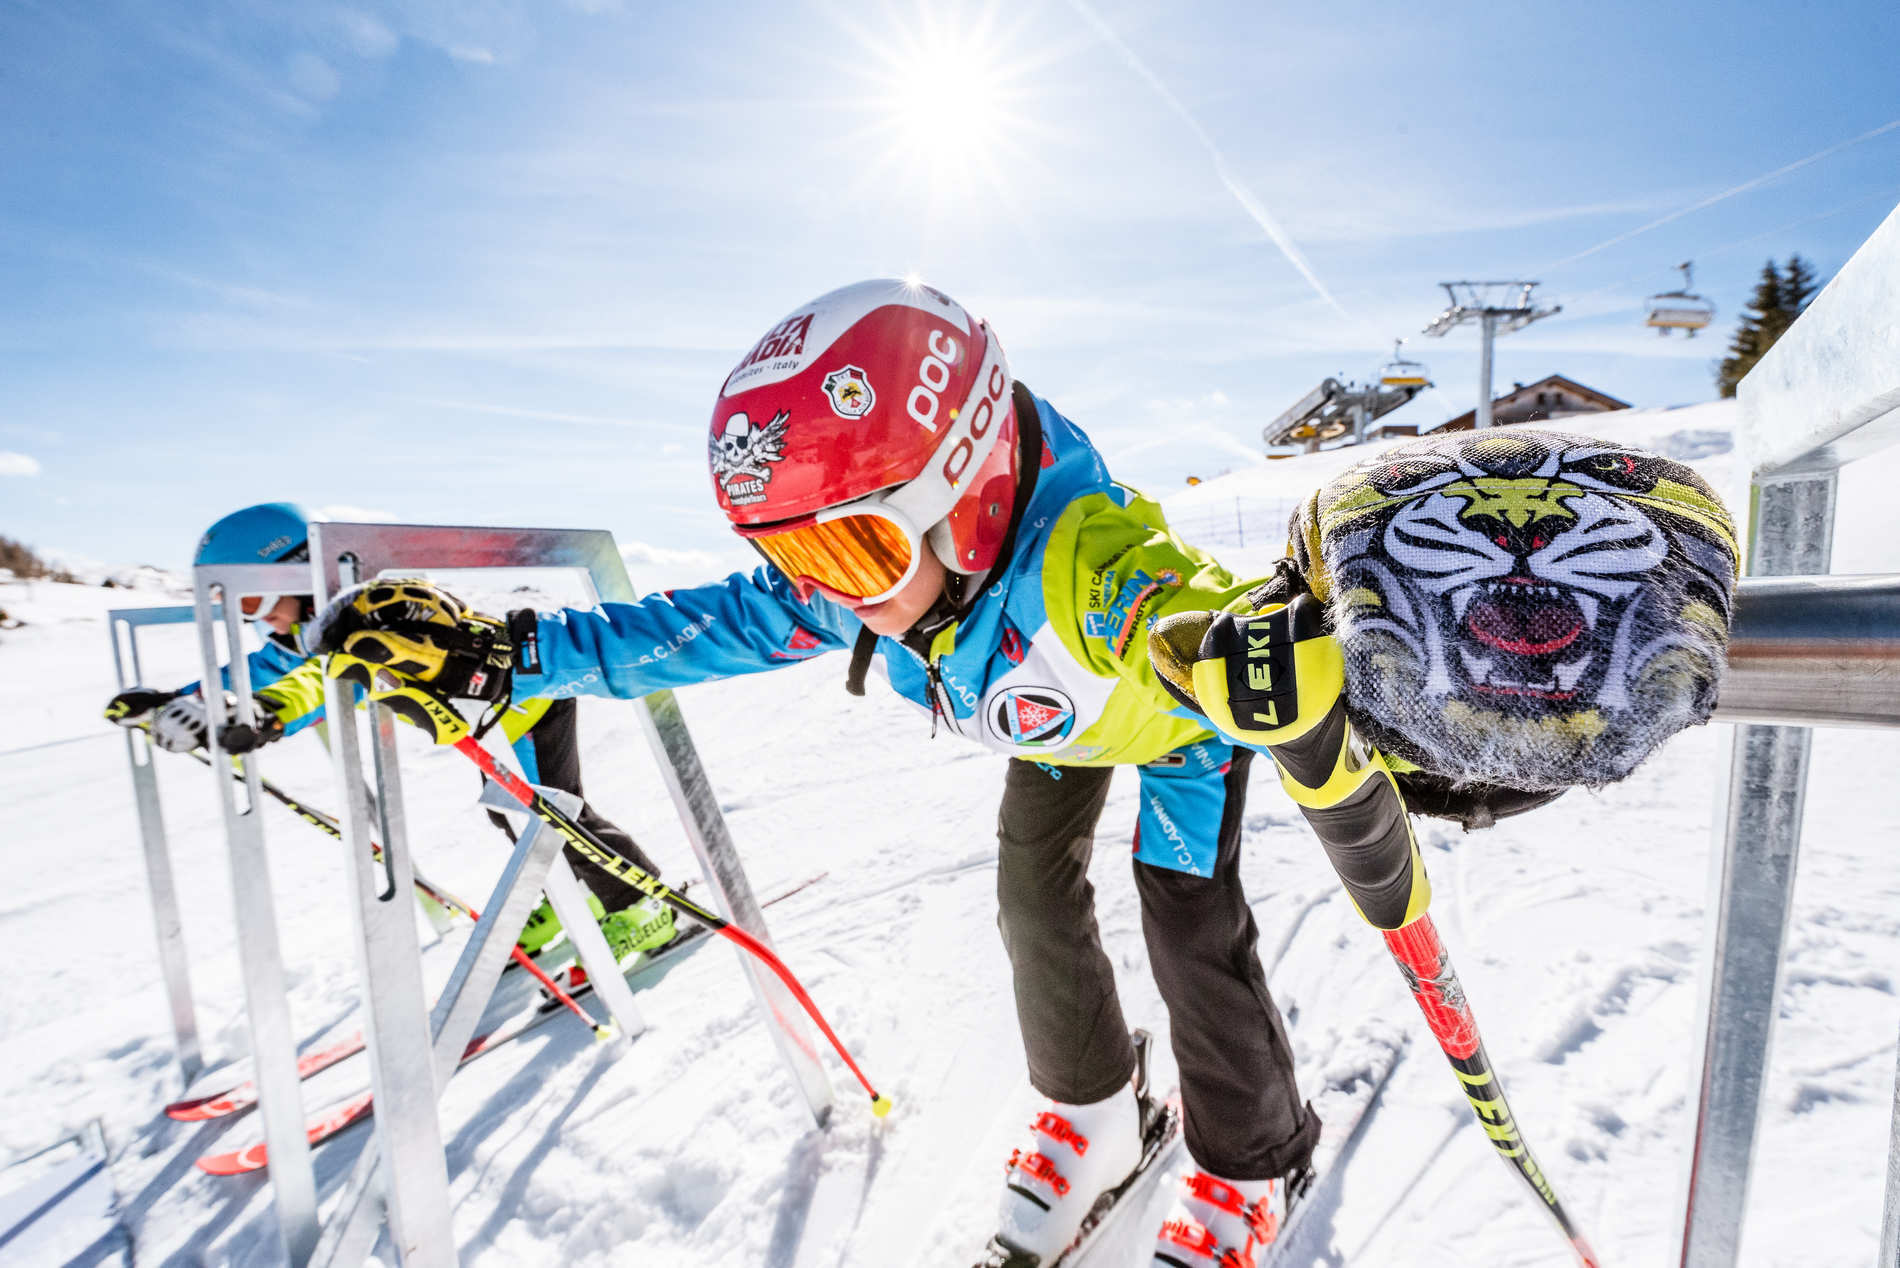 alta badia 02 03 2019 lifestyle fs christian riefenberg qparks 8